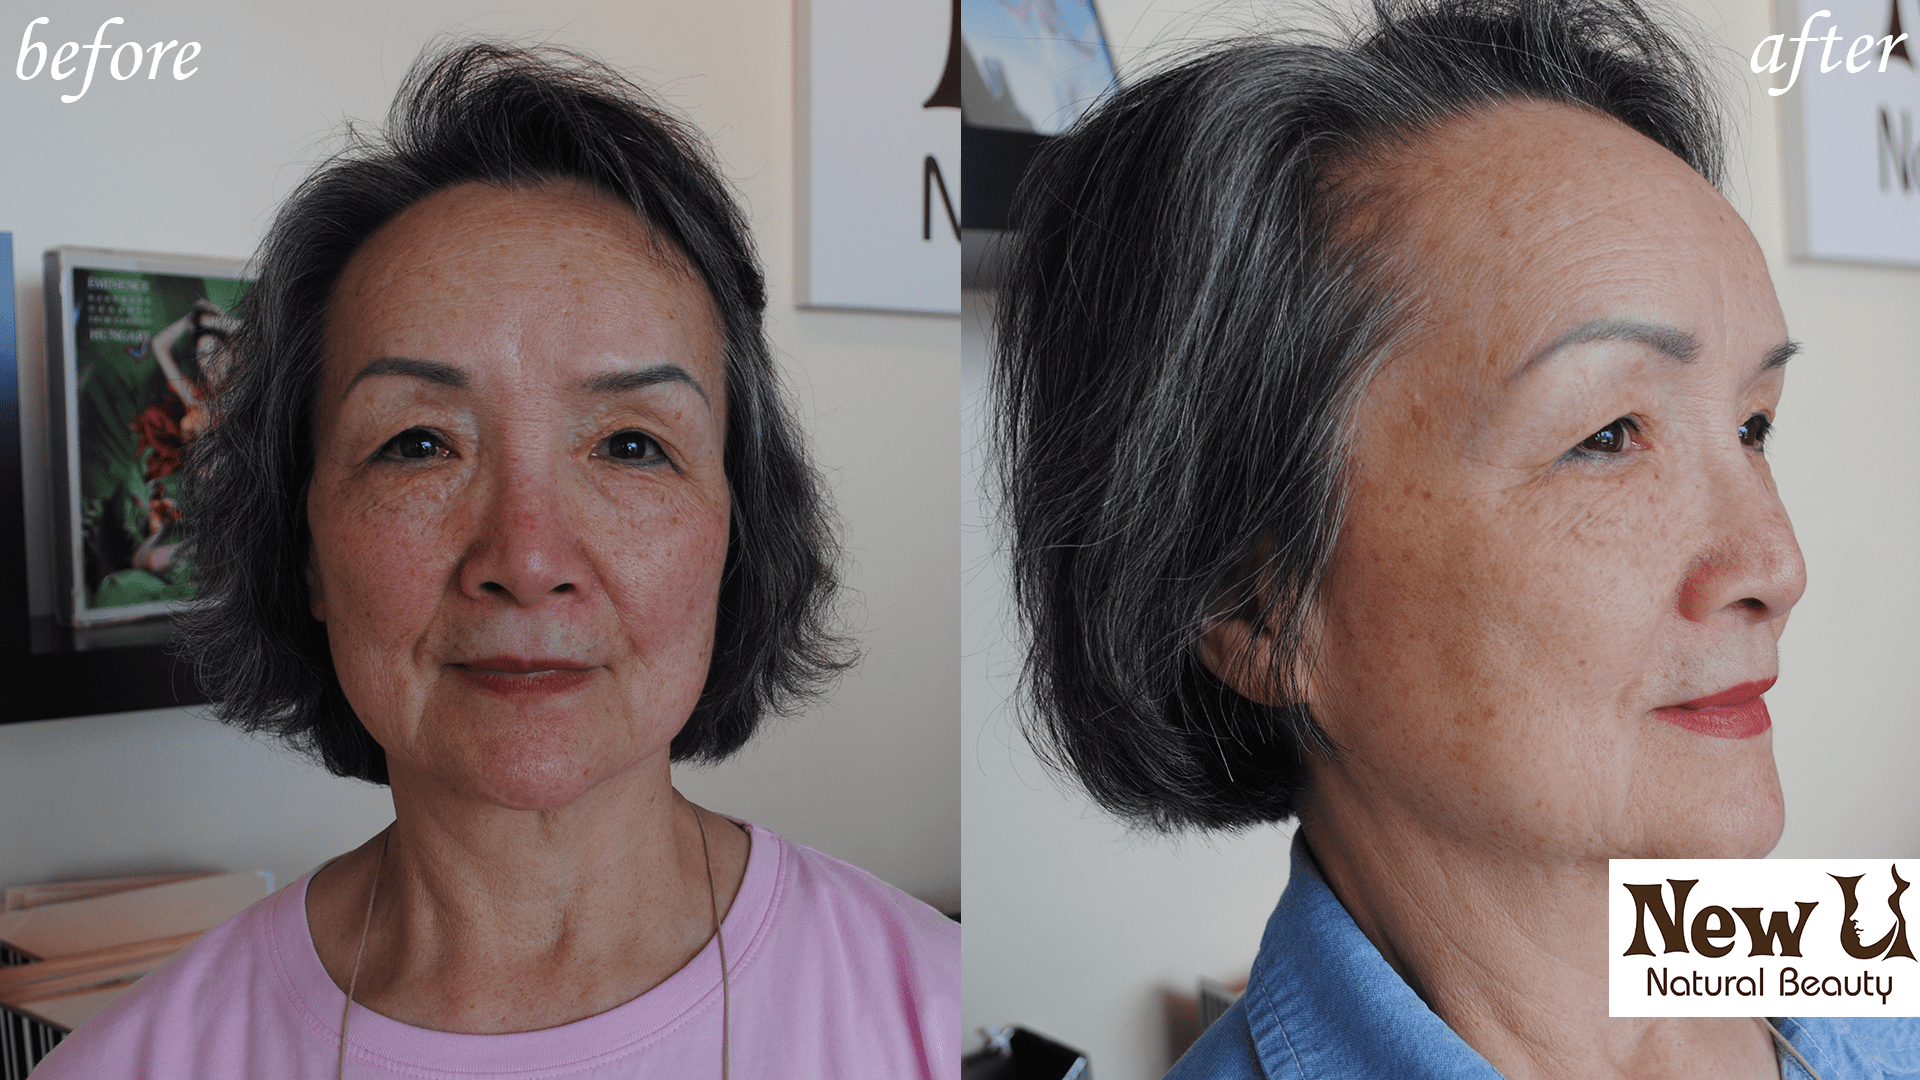 Beyond Botox 4 Las Vegas Before and After